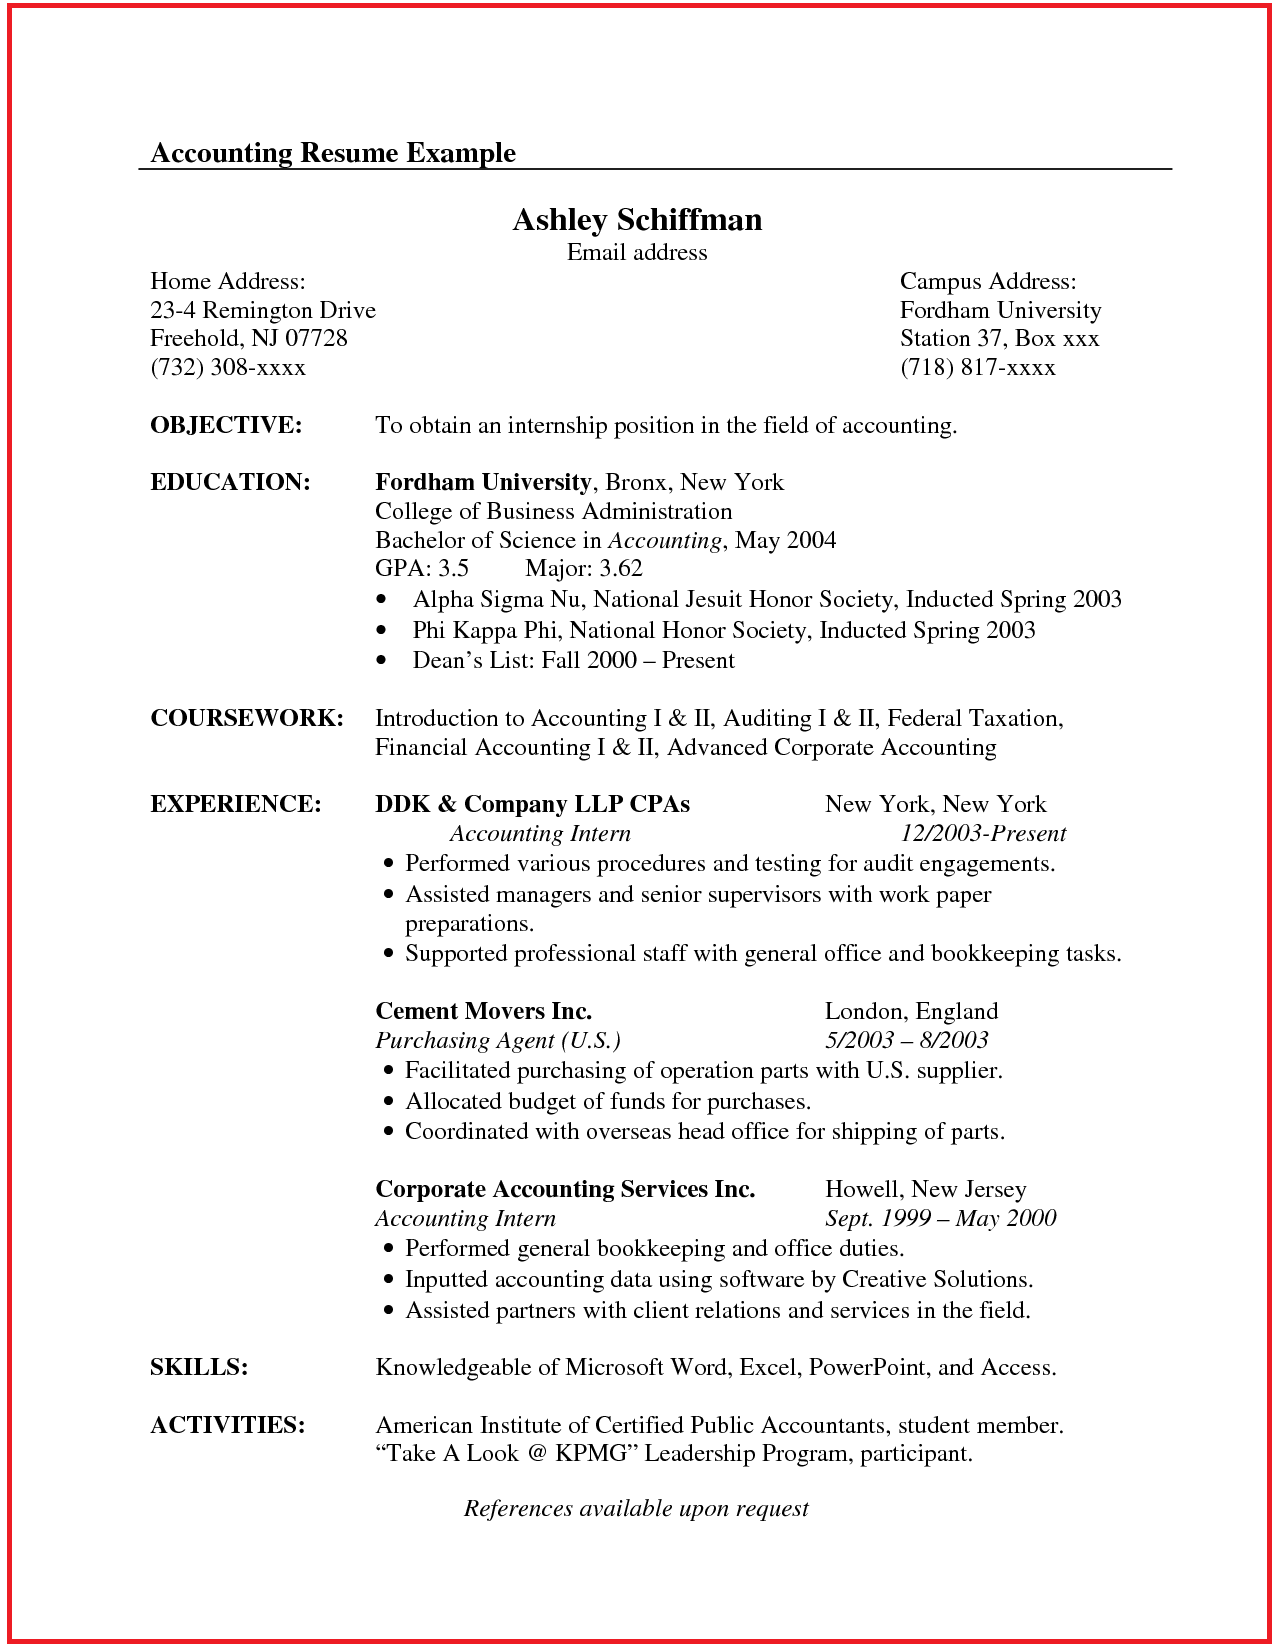 Accountant Resume Accountant Resume Sample Canada  Httpwwwjobresumewebsite